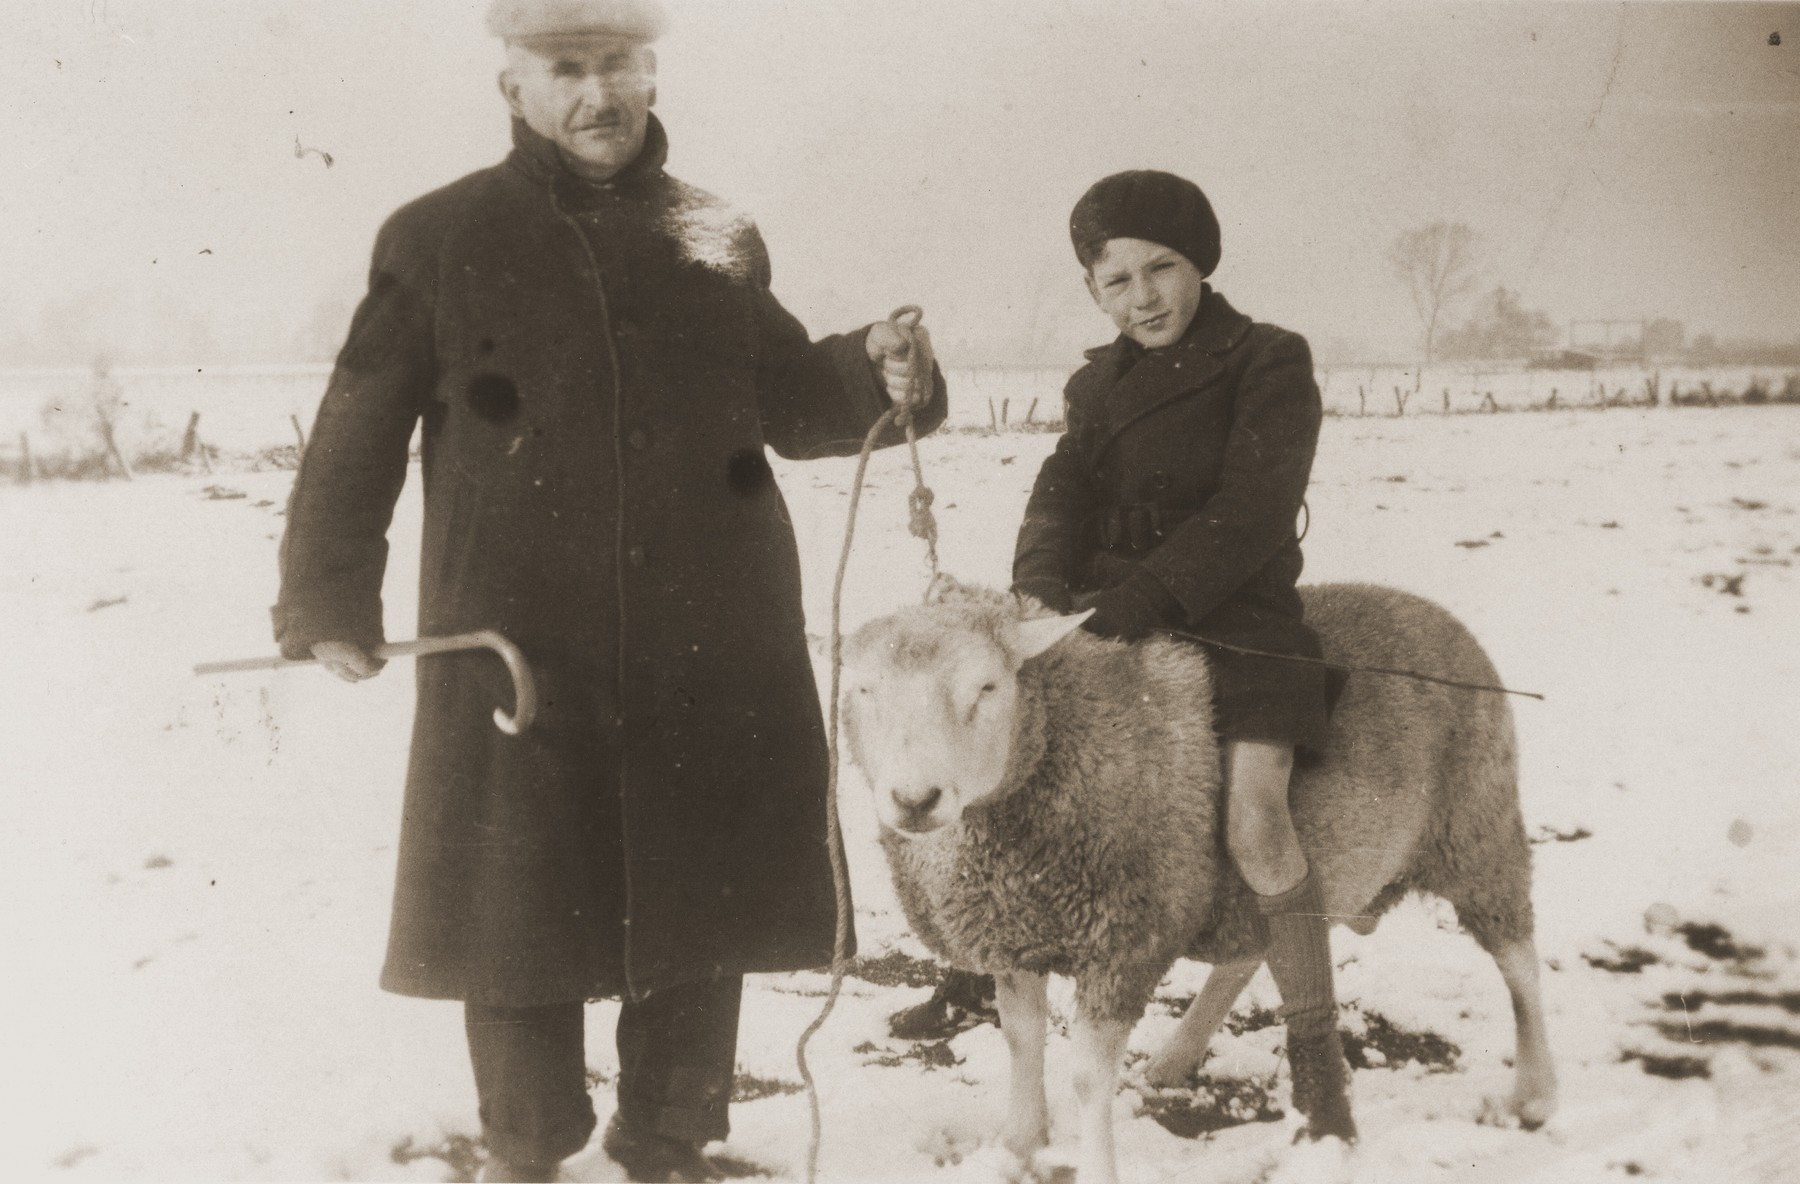 Lehman van Gelder takes his nine-year-old grand nephew, Sallo Menco, for a ride on a sheep.  Sallo, the son of Leo and Fie Menco, was deported and killed with his father during the war after their hideout in the woods outside Eibergen was raided by German police.  Sallo's mother and sister, Bep, survived, as did his great uncle Lehman van Gelder.